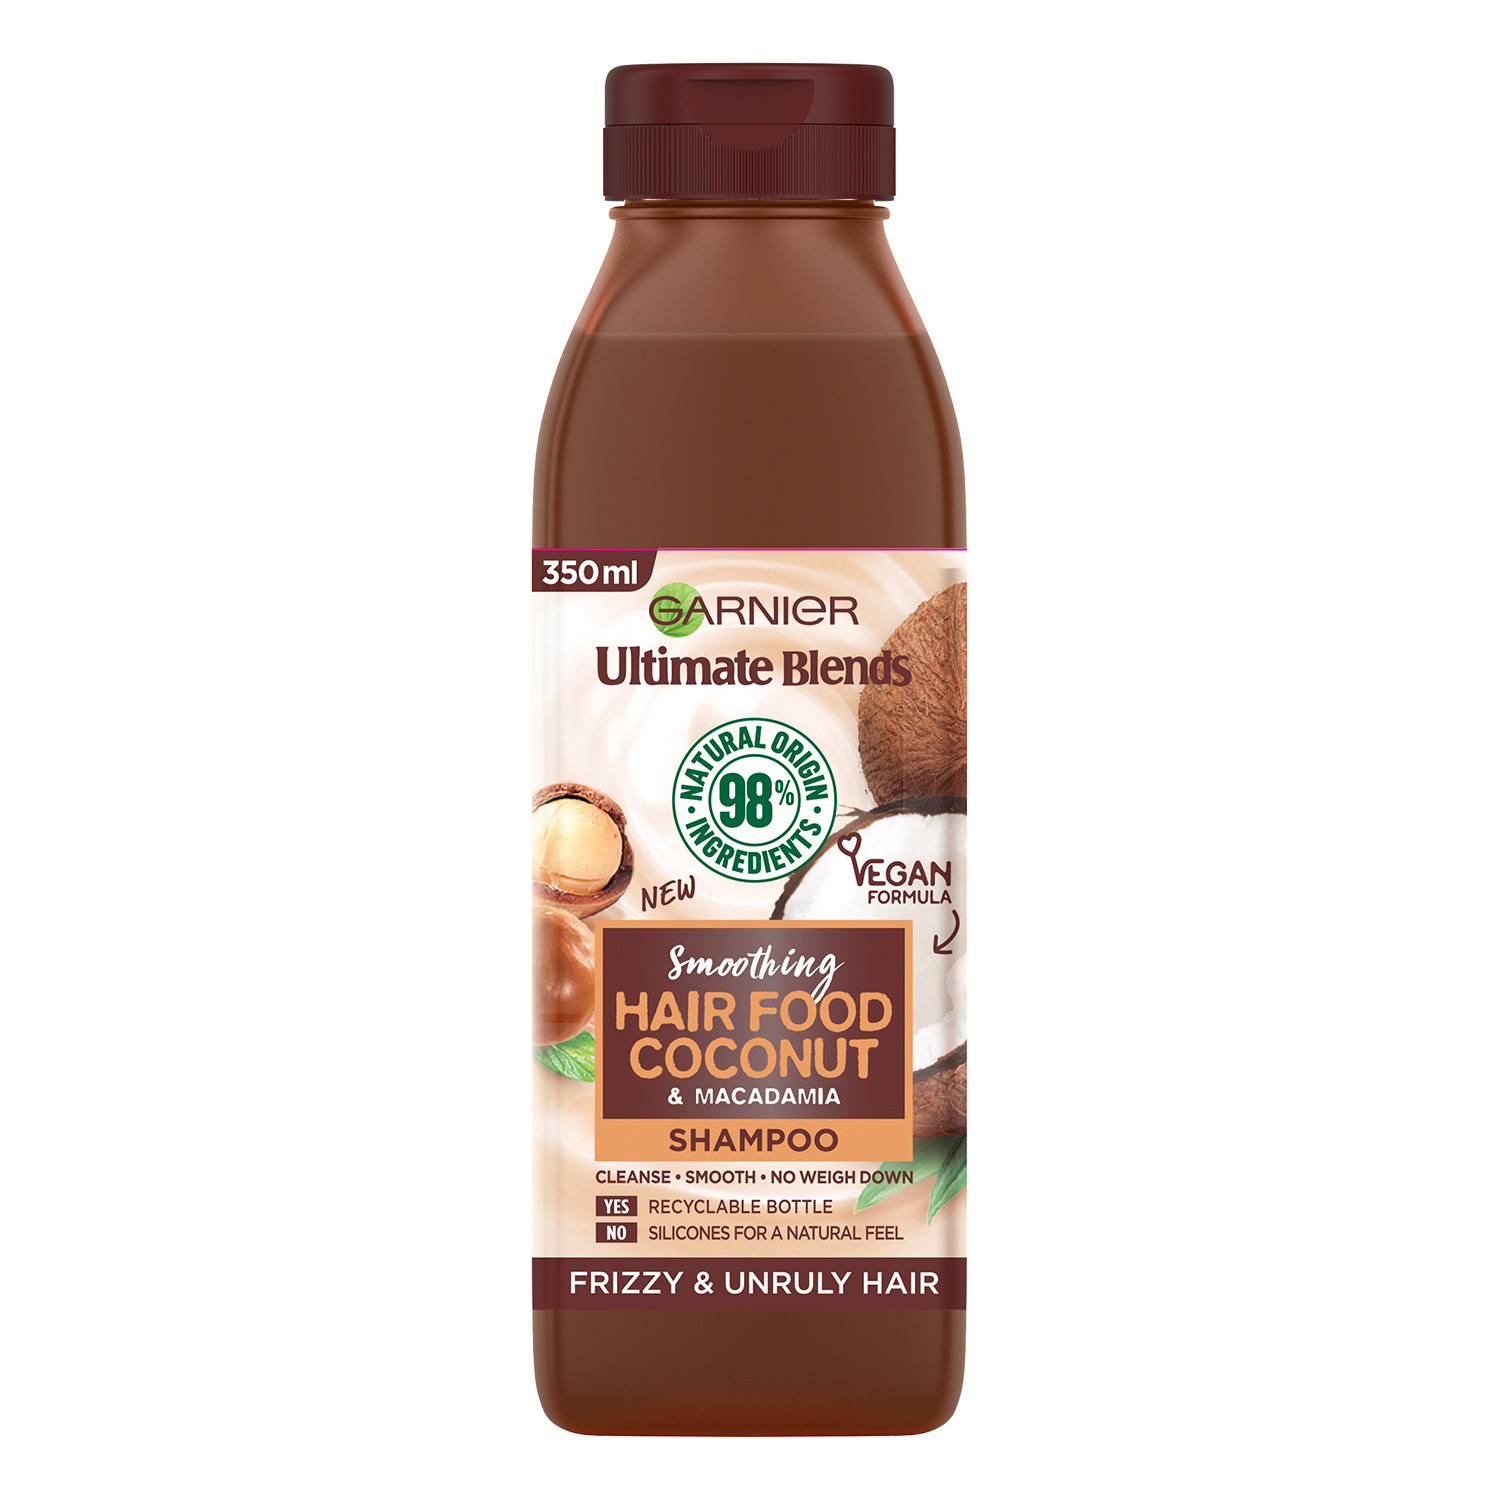 Garnier Ultimate Blends Smoothing Hair Food Coconut Shampoo For Frizzy Hair